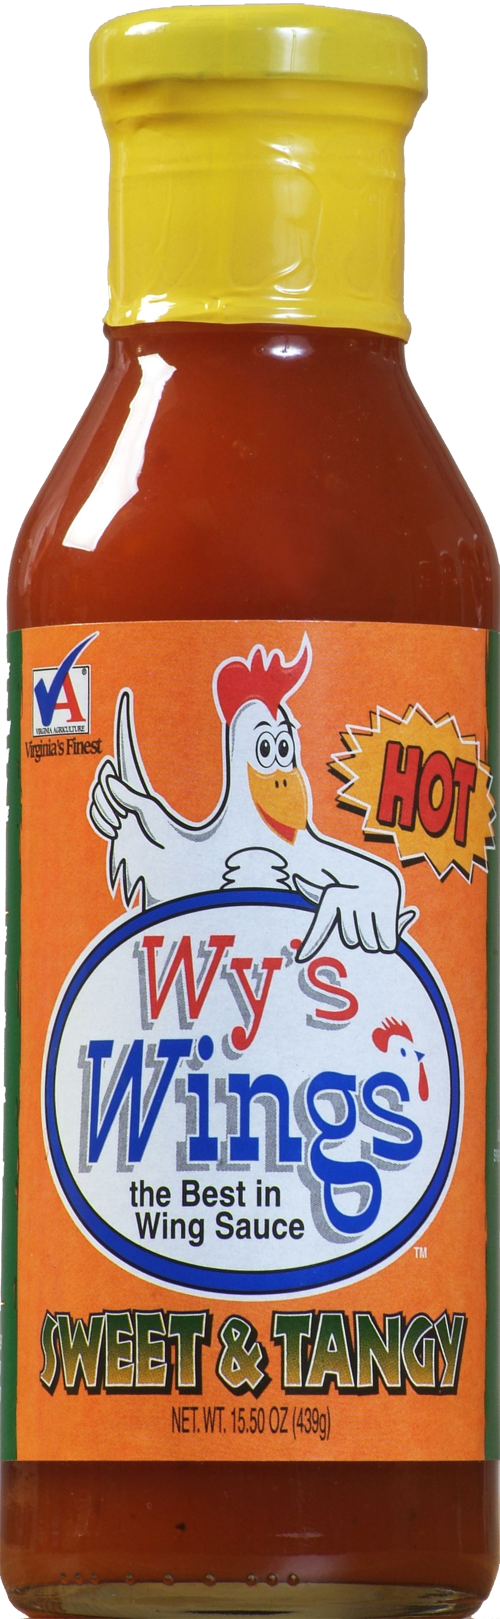 Sweet & Tangy Hot Sauce